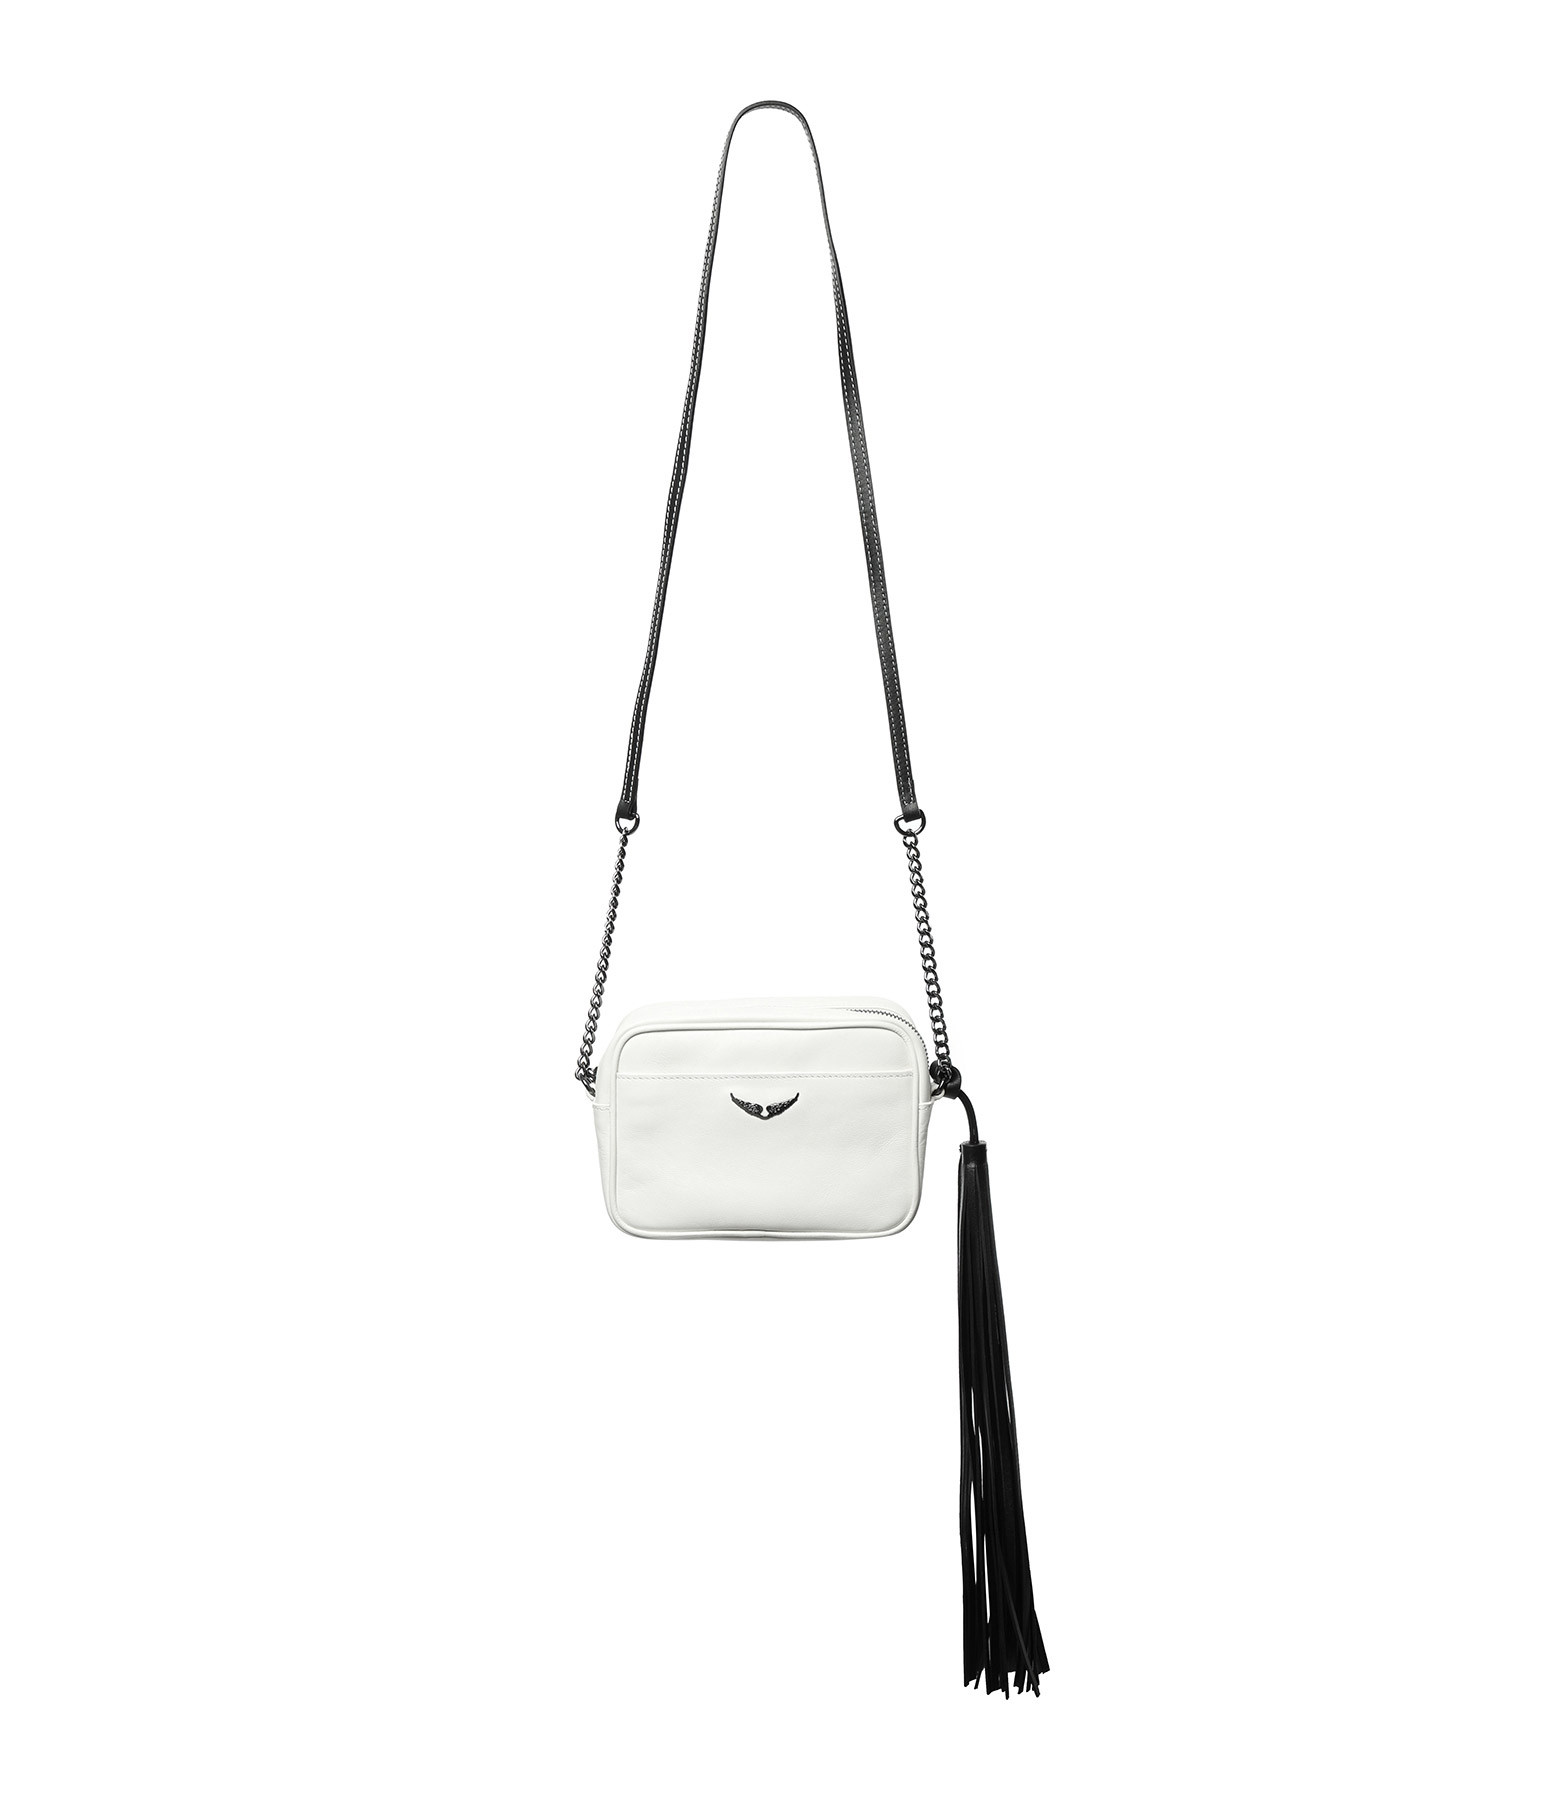 ZADIG & VOLTAIRE - Sac XS Boxy Initial Cuir Blanc